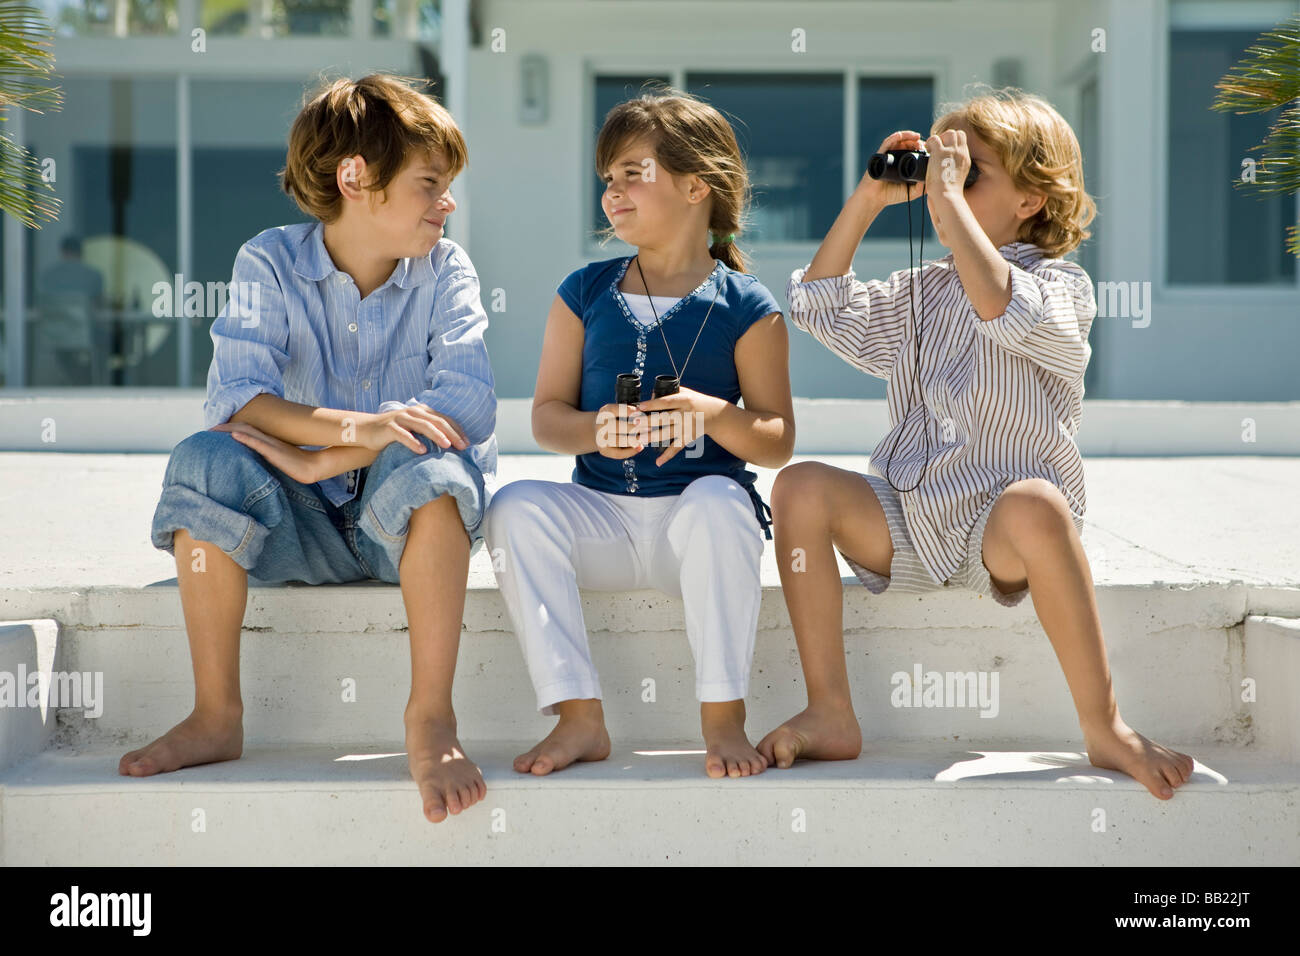 Boy looking through binoculars with his friends sitting beside him - Stock Image